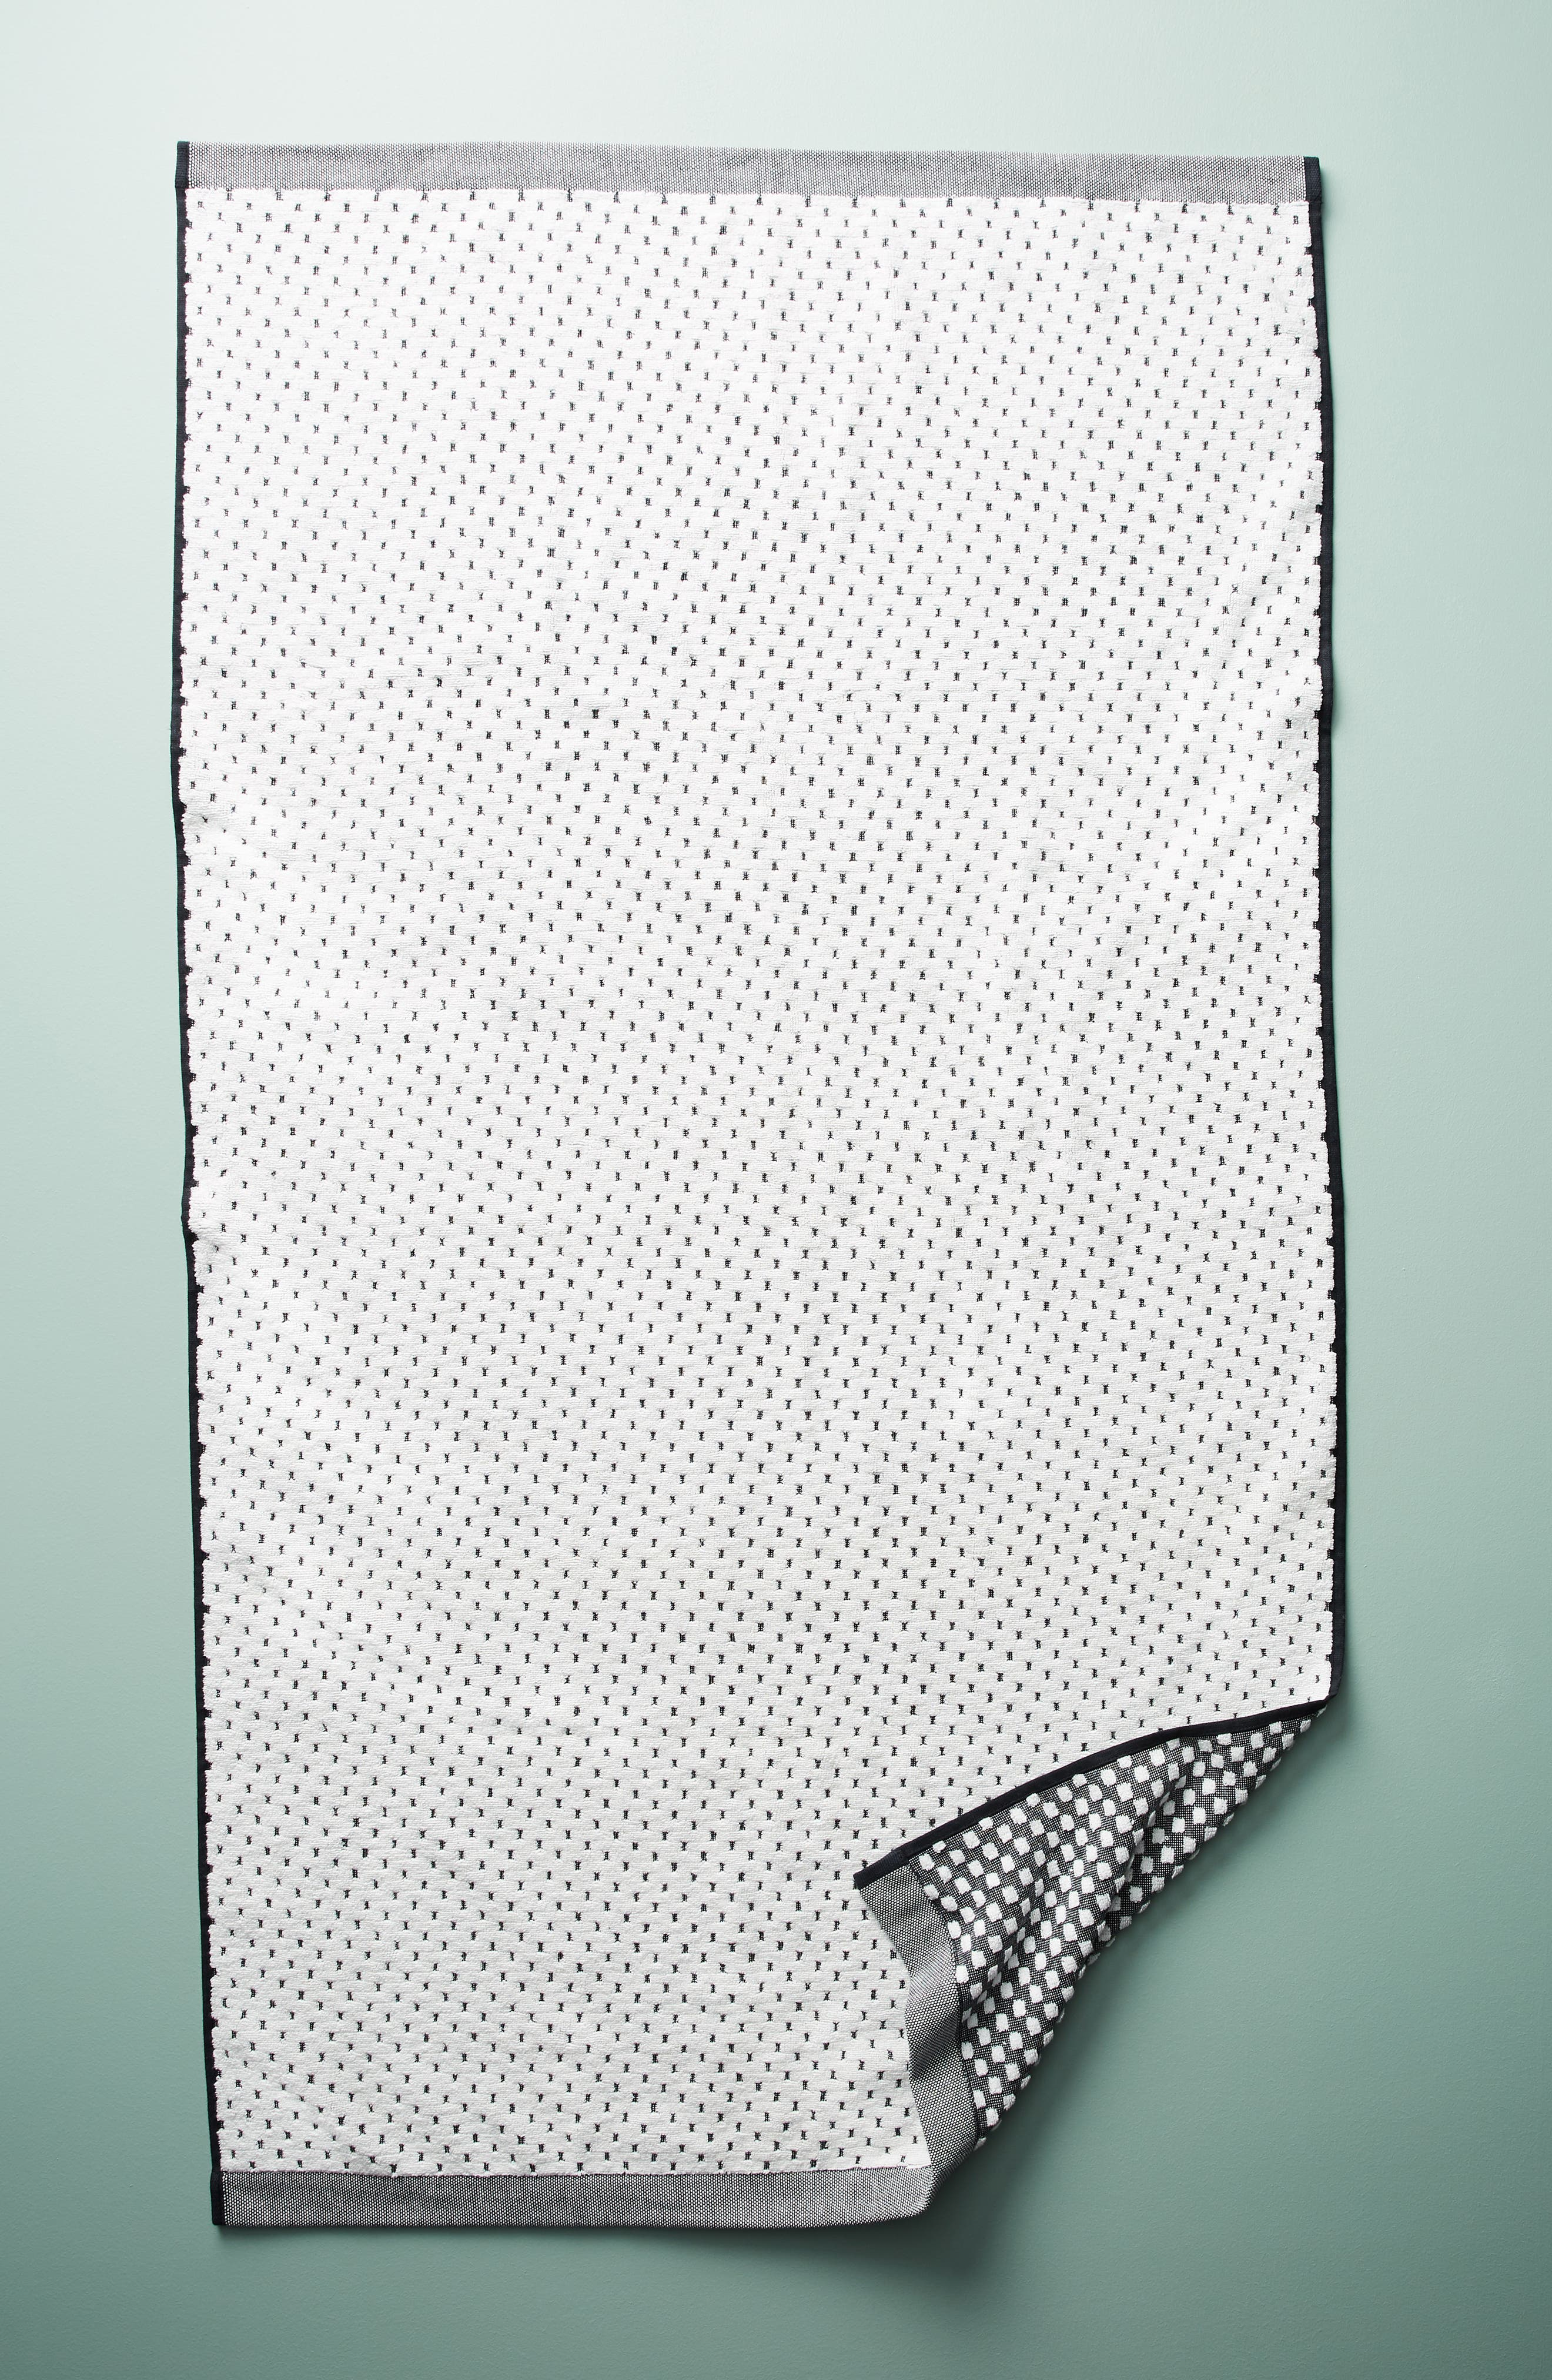 Dot Jacquard Bath Towel,                             Alternate thumbnail 5, color,                             001